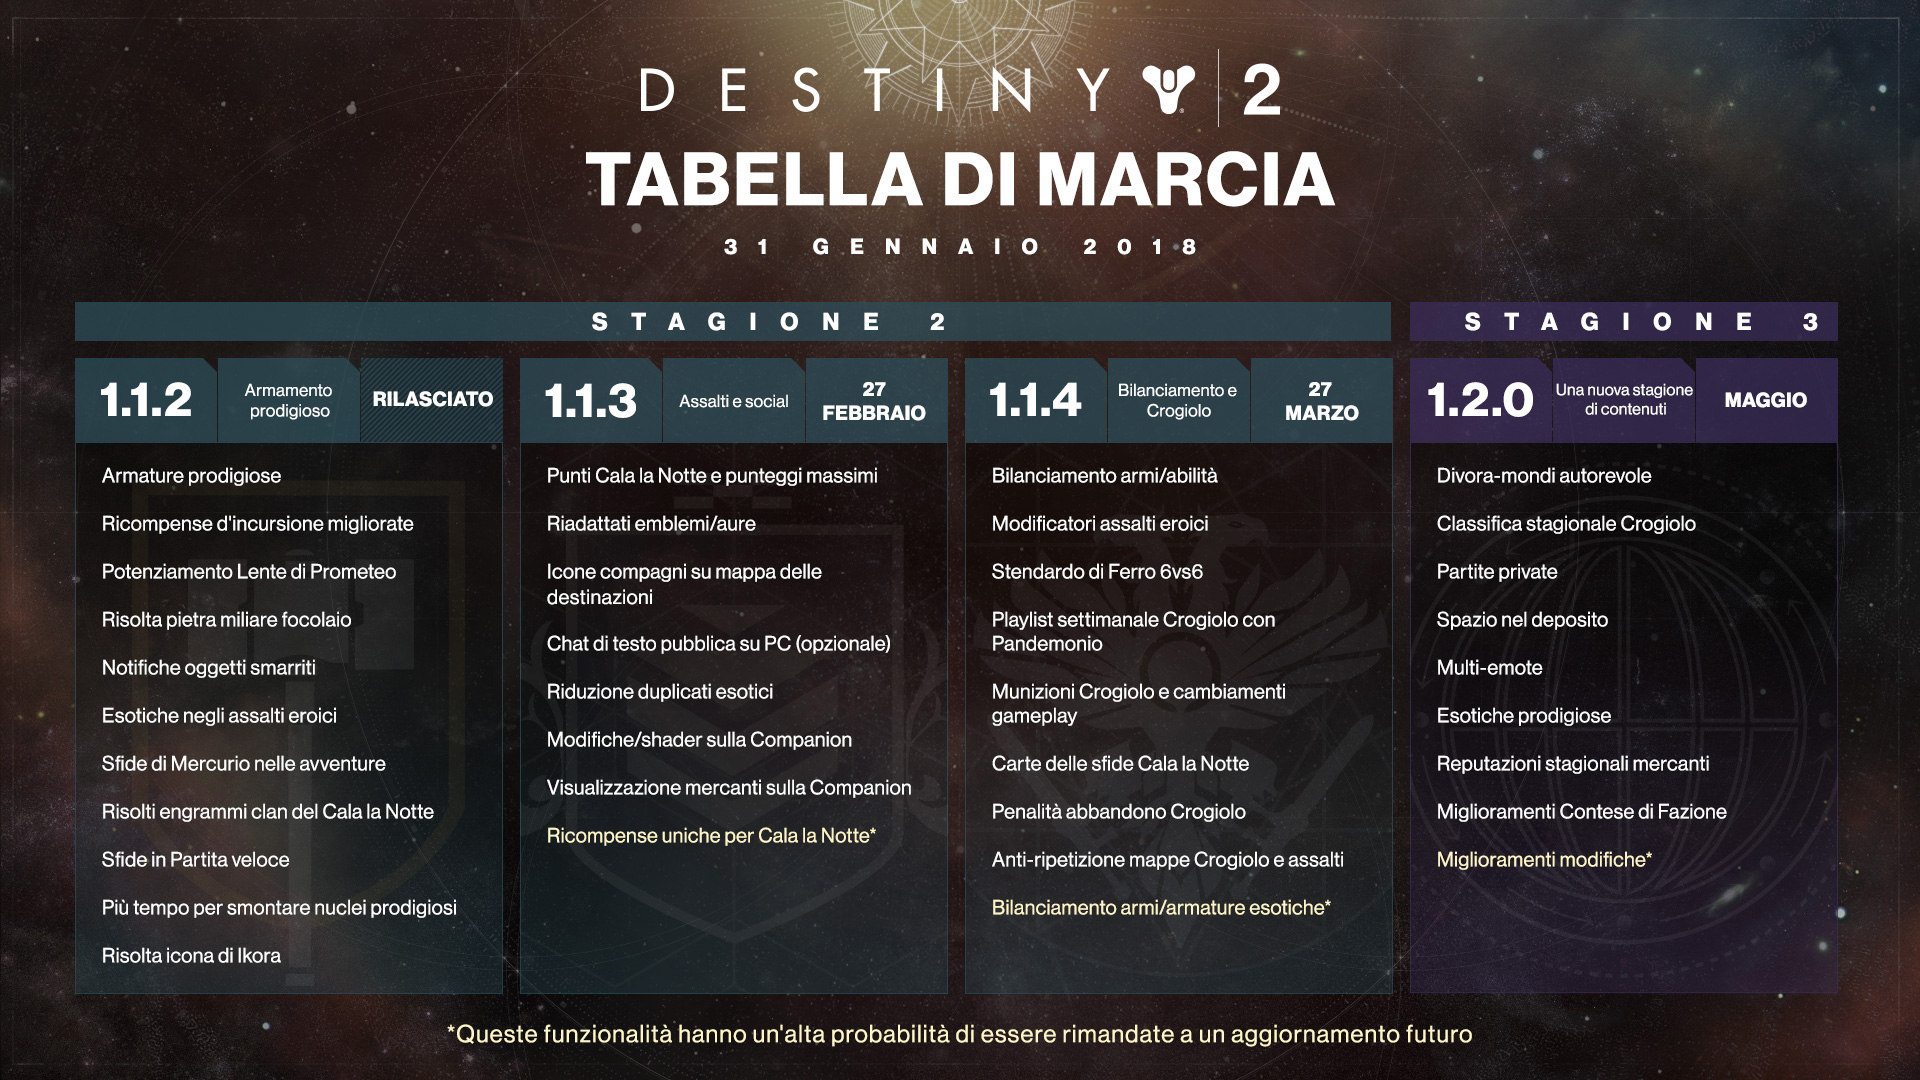 https://www.bungie.net/pubassets/106598/D2_Development_Roadmap_1312018_IT.jpg?cv=3983621215&av=1724861602